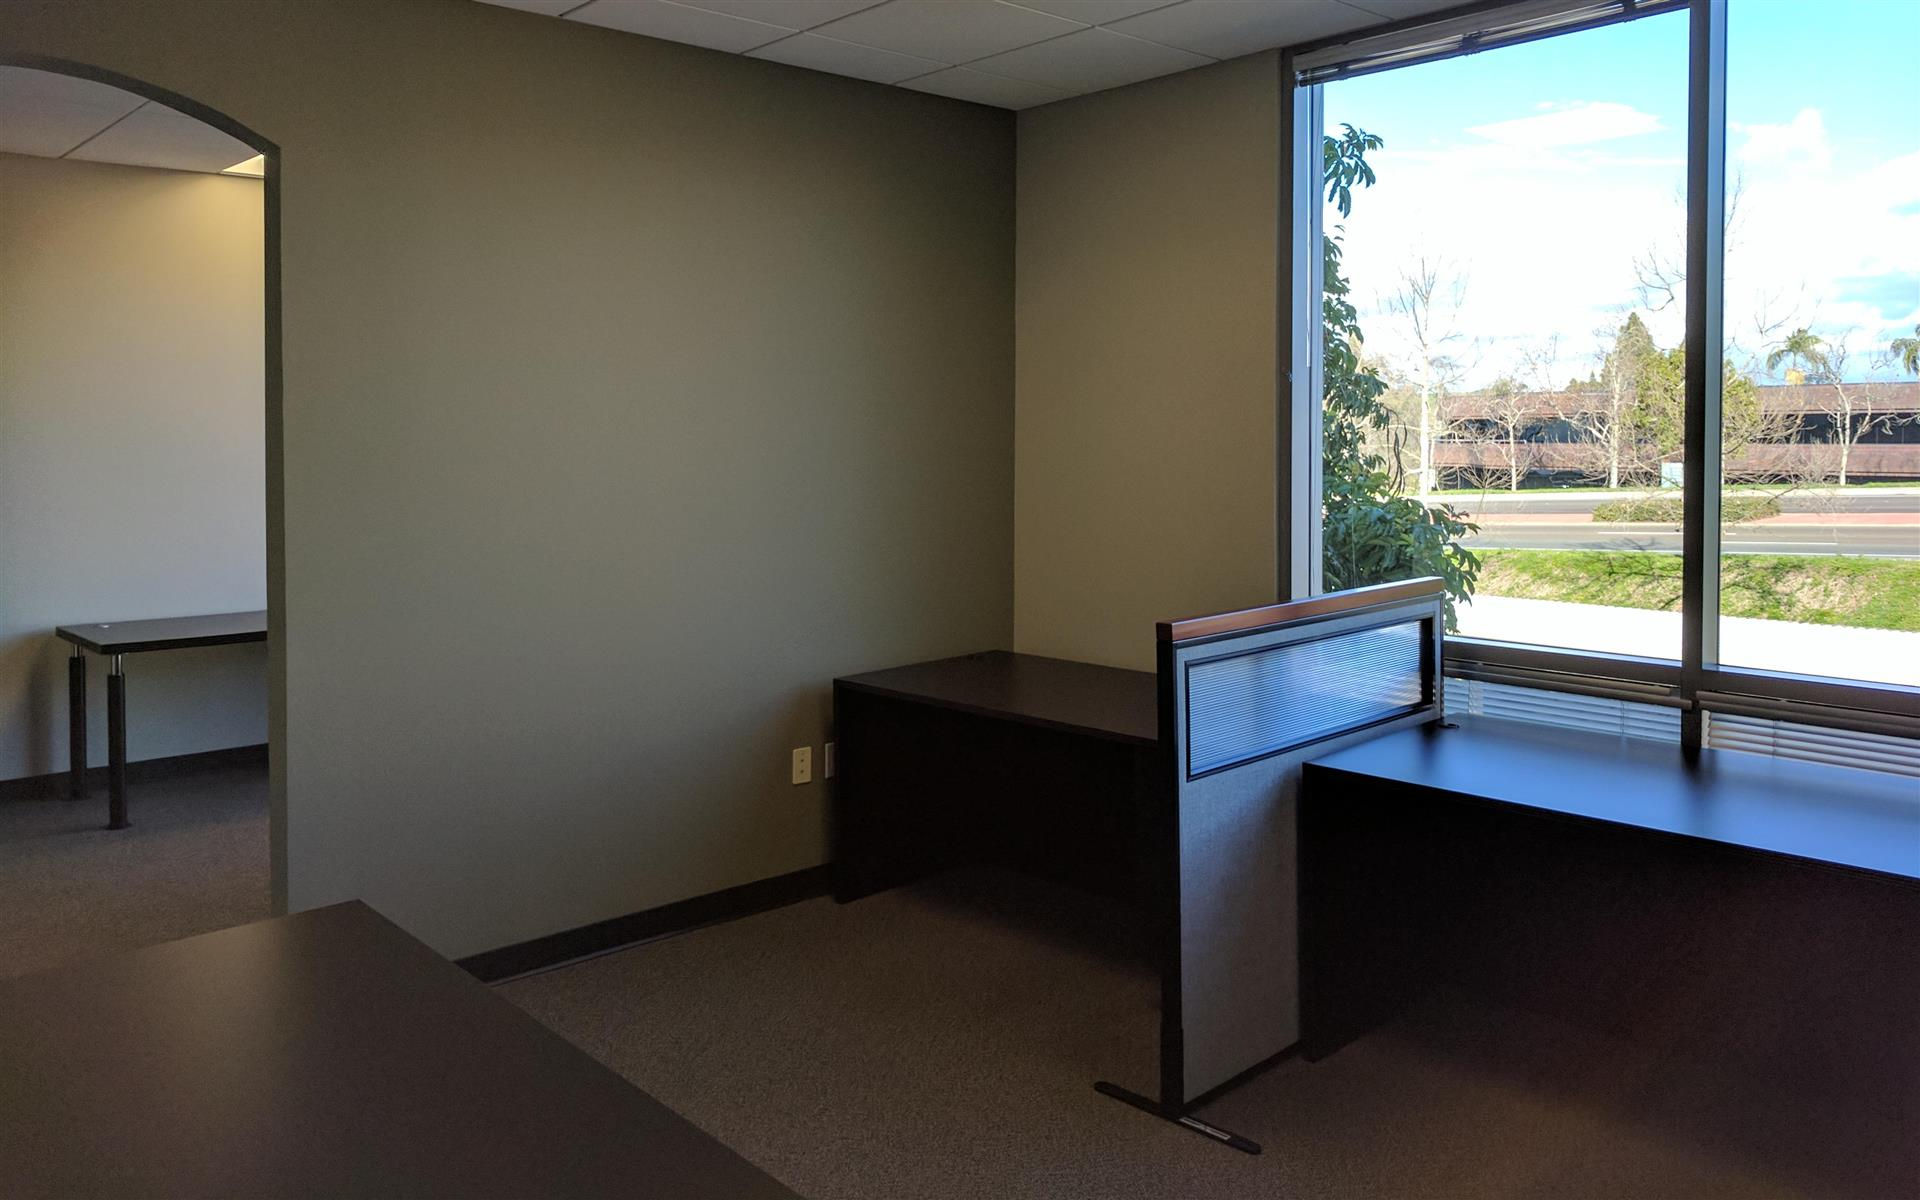 Pacific Workplaces - Carlsbad - Office #14-15 for 5 People